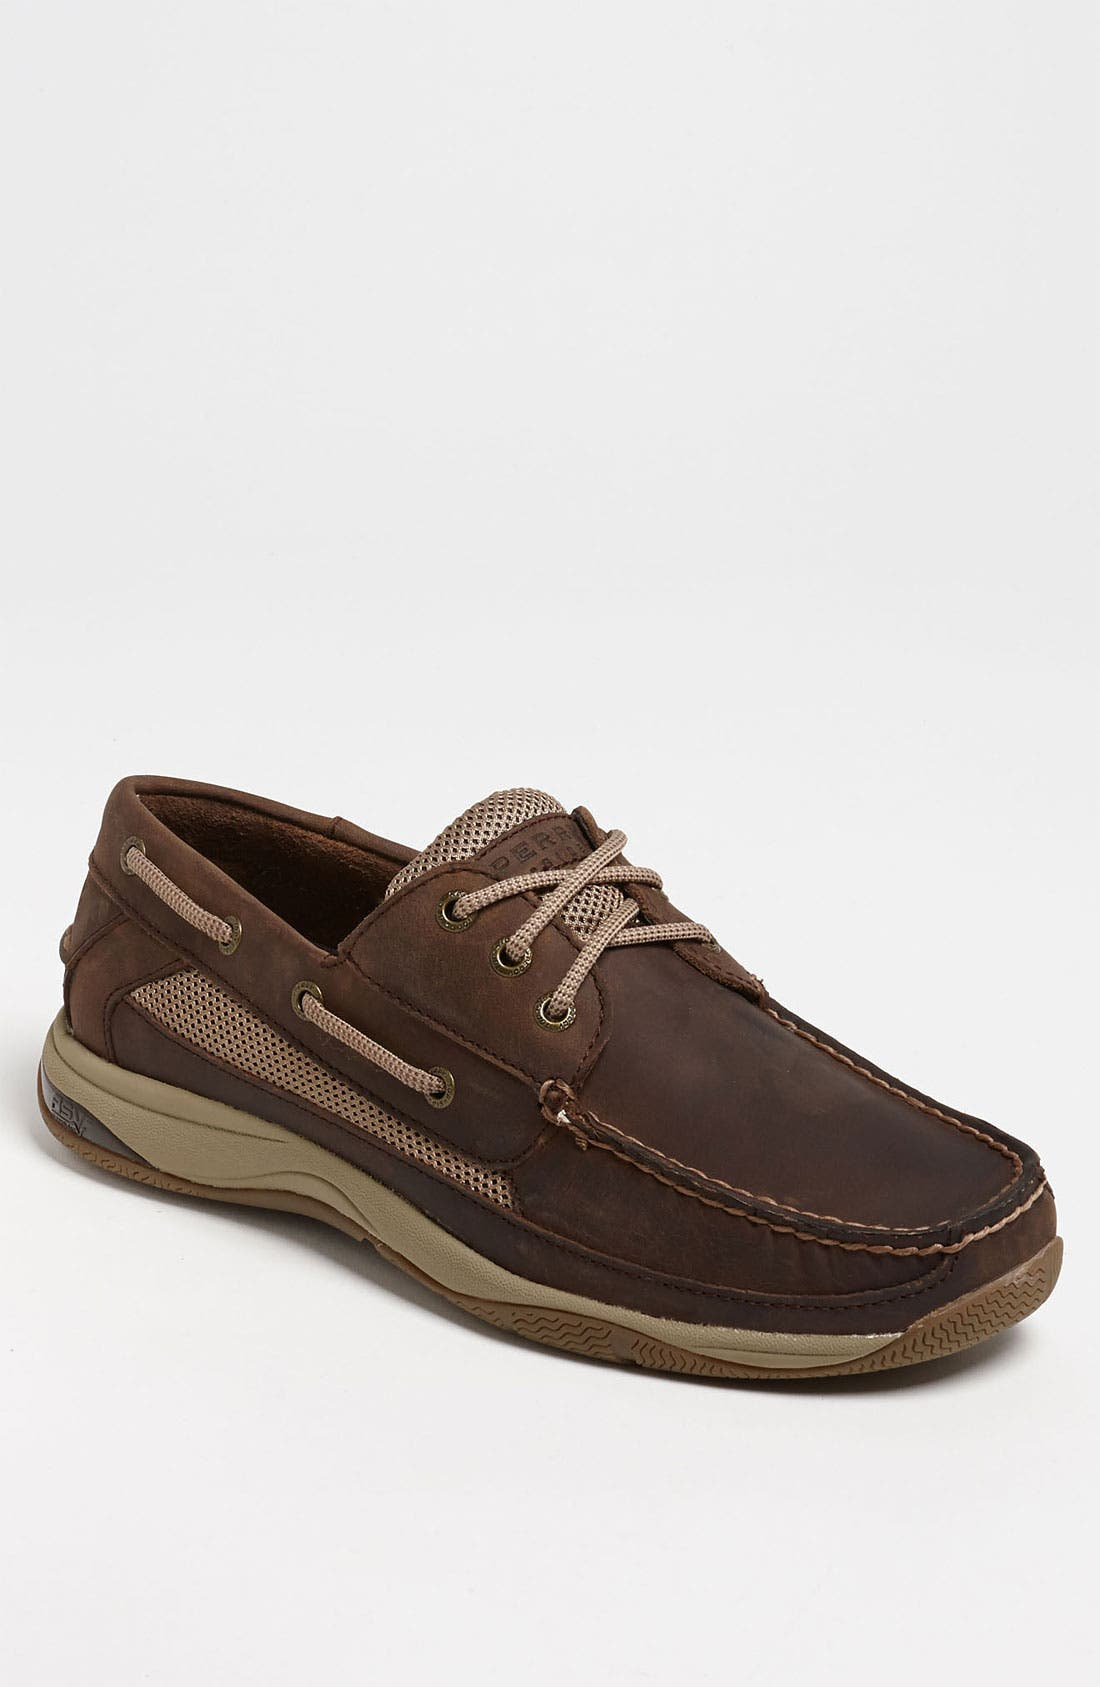 Main Image - Sperry Top-Sider® 'Billfish' Boat Shoe